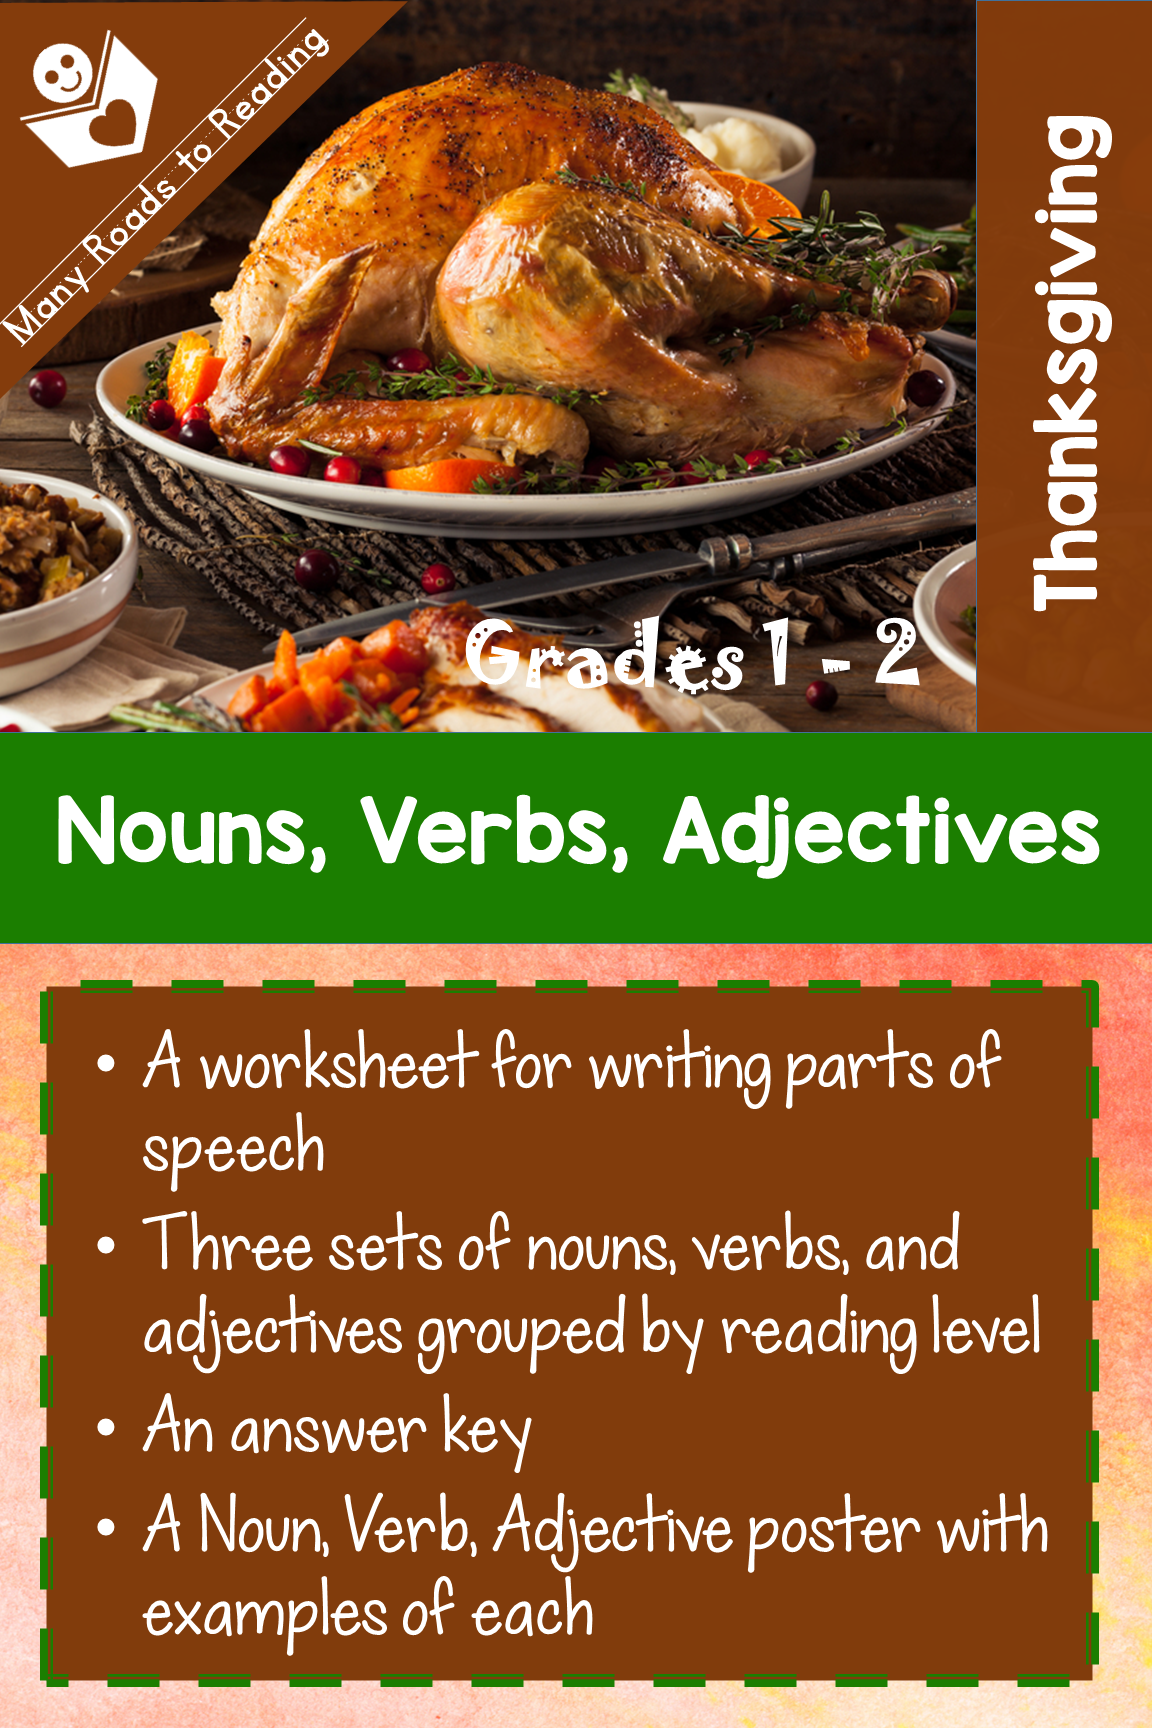 Thanksgiving Nouns Verbs Adjectives 1 2 Worksheet For